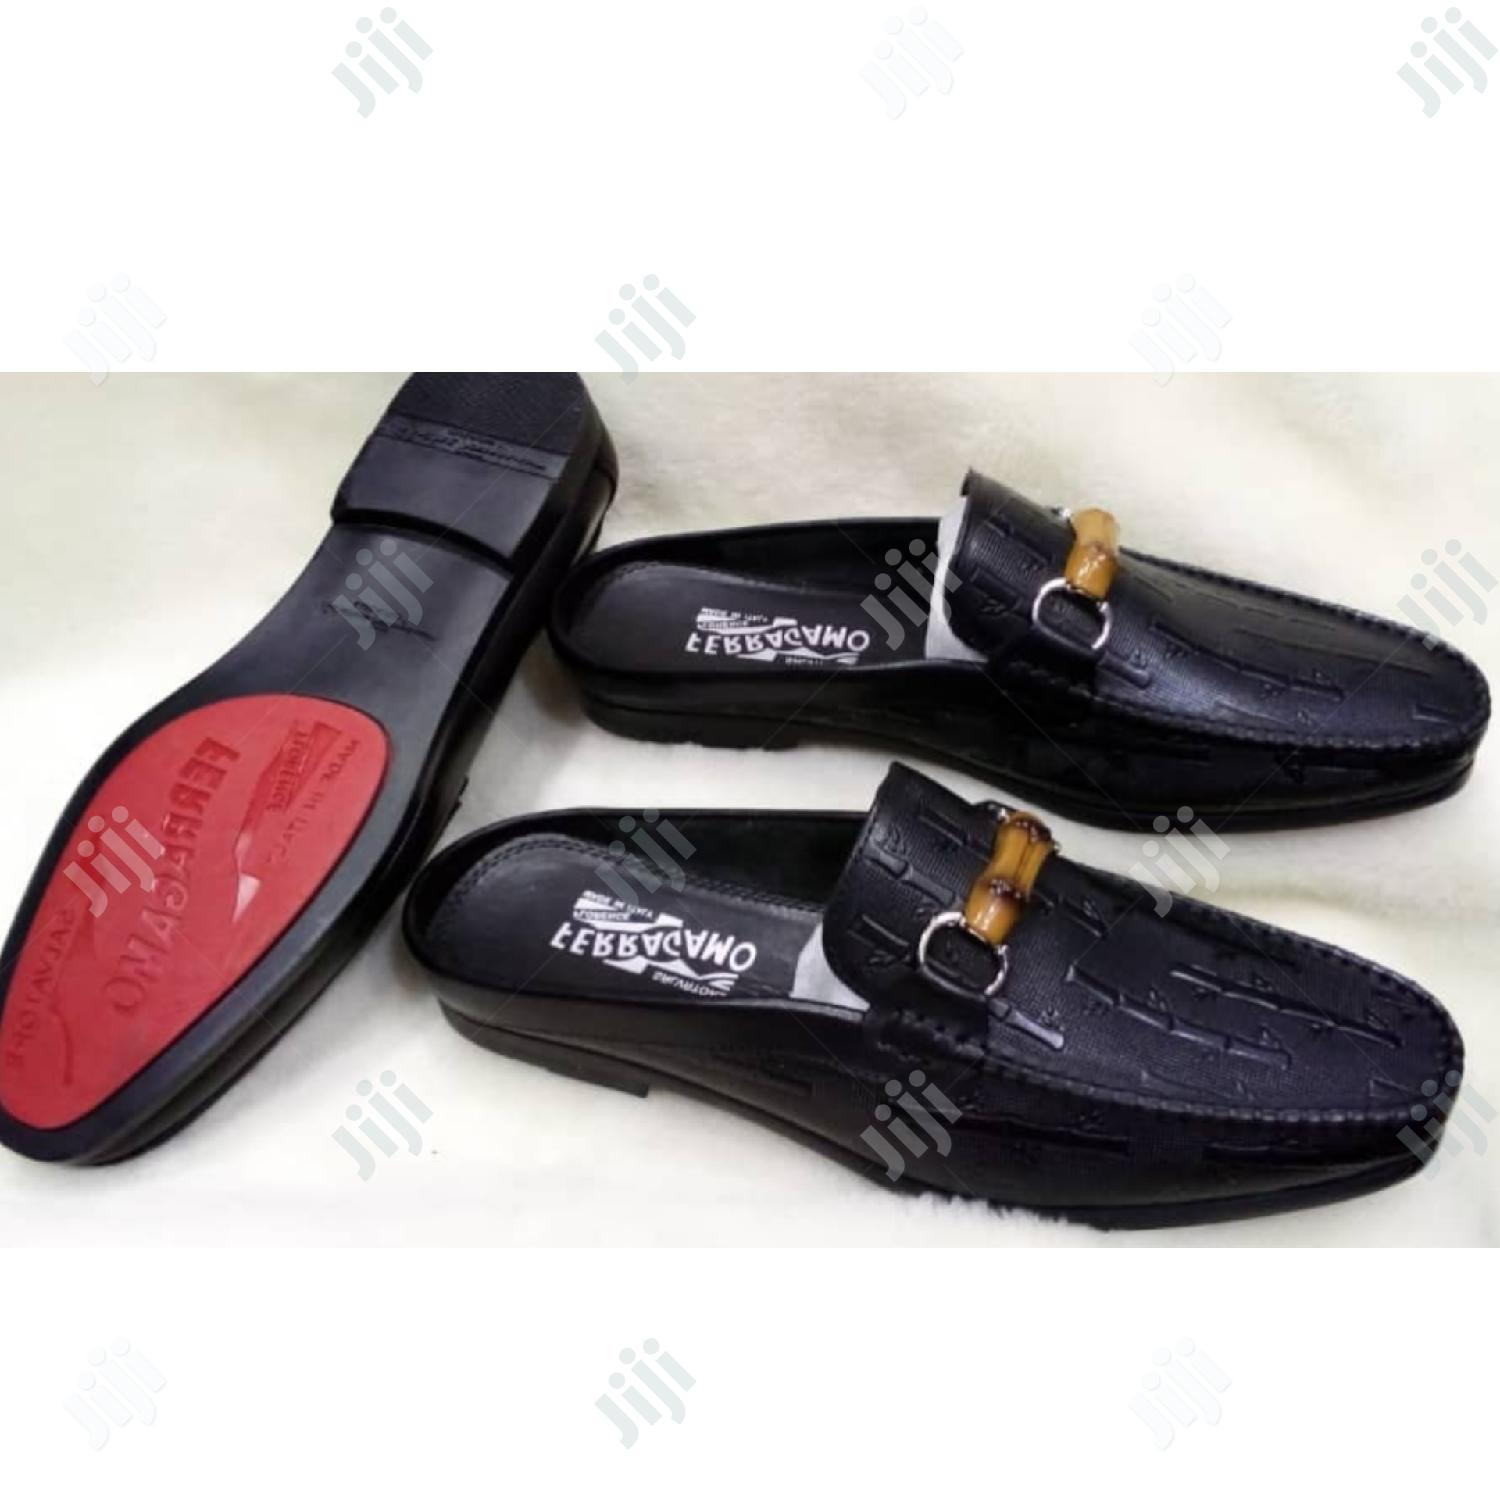 Quality Ferragamo Half Leather Shoe For Men | Shoes for sale in Ikoyi, Lagos State, Nigeria